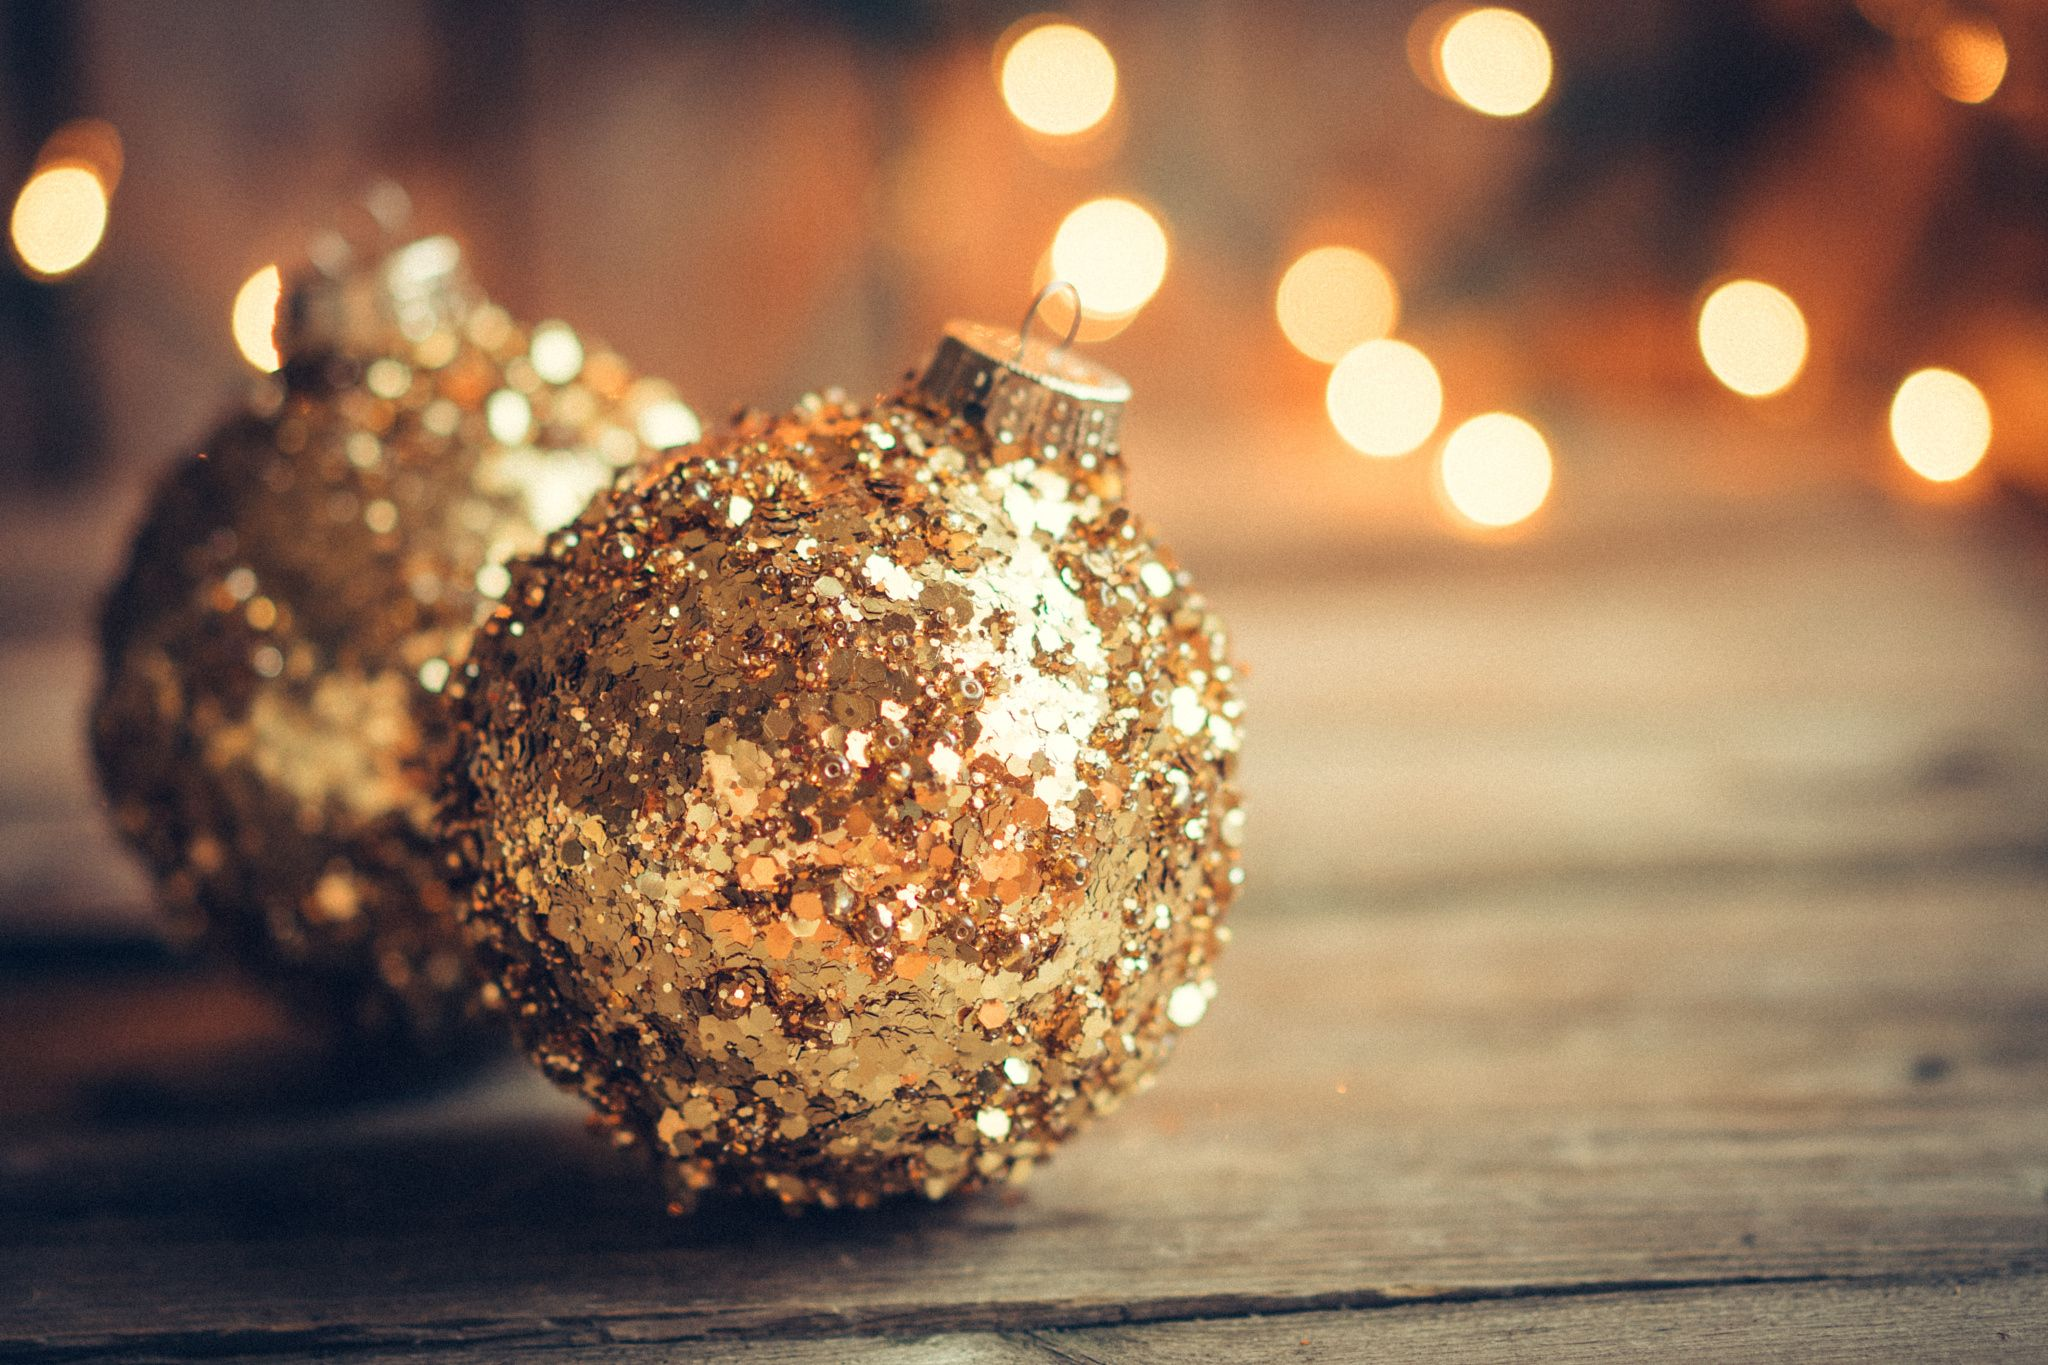 Golden Christmas Ornaments On Rustic Background Wallpaper Iphone Christmas Gold Christmas Wallpaper Christmas Ornaments